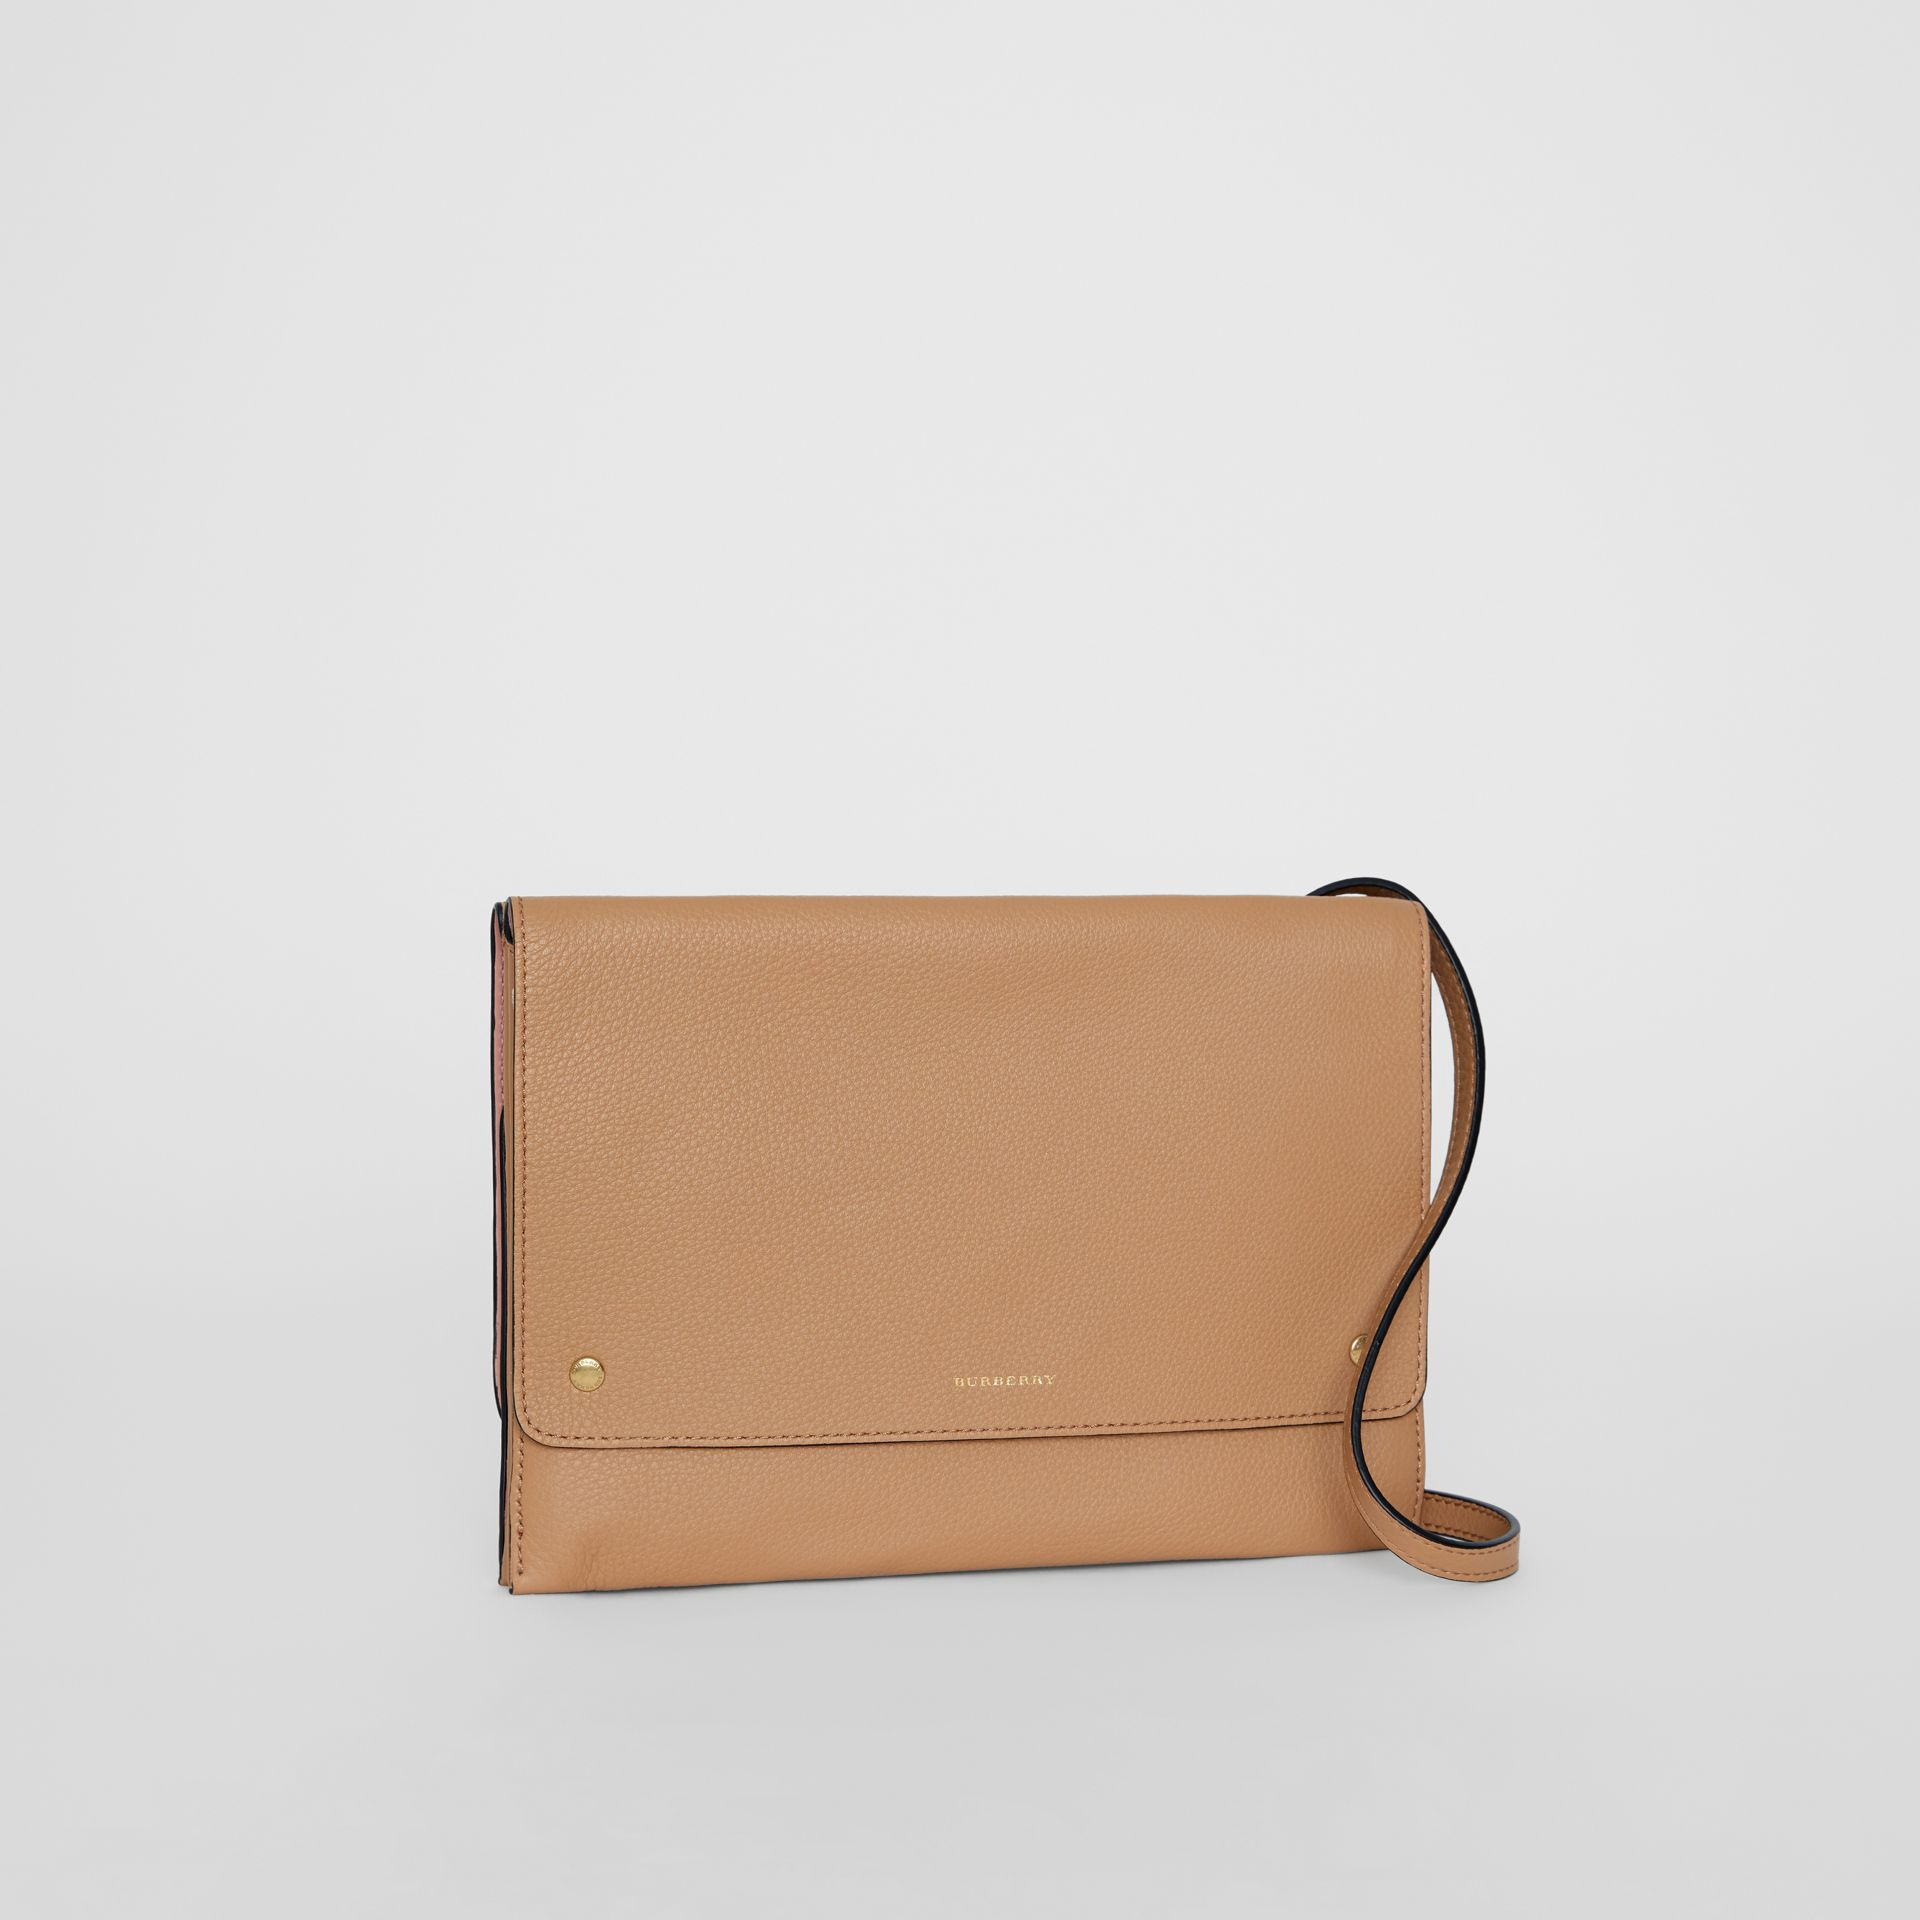 Leather Pouch with Detachable Strap in Light Camel - Women | Burberry - gallery image 6